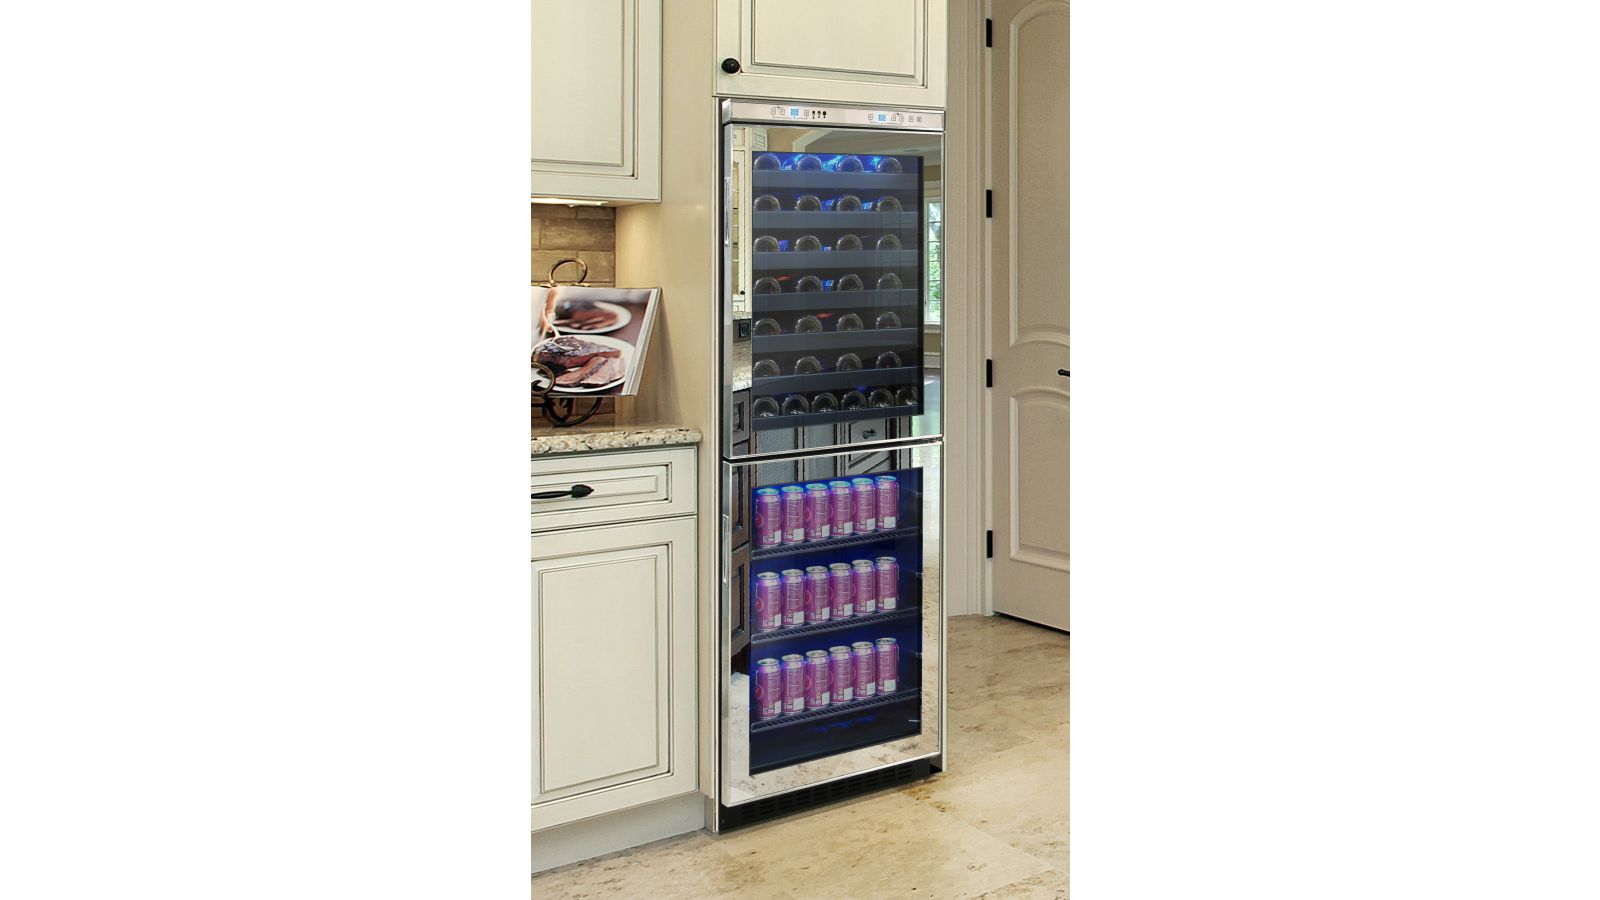 NEW: Vinotemp Mirrored Touch Screen Wine & Beverage Cooler